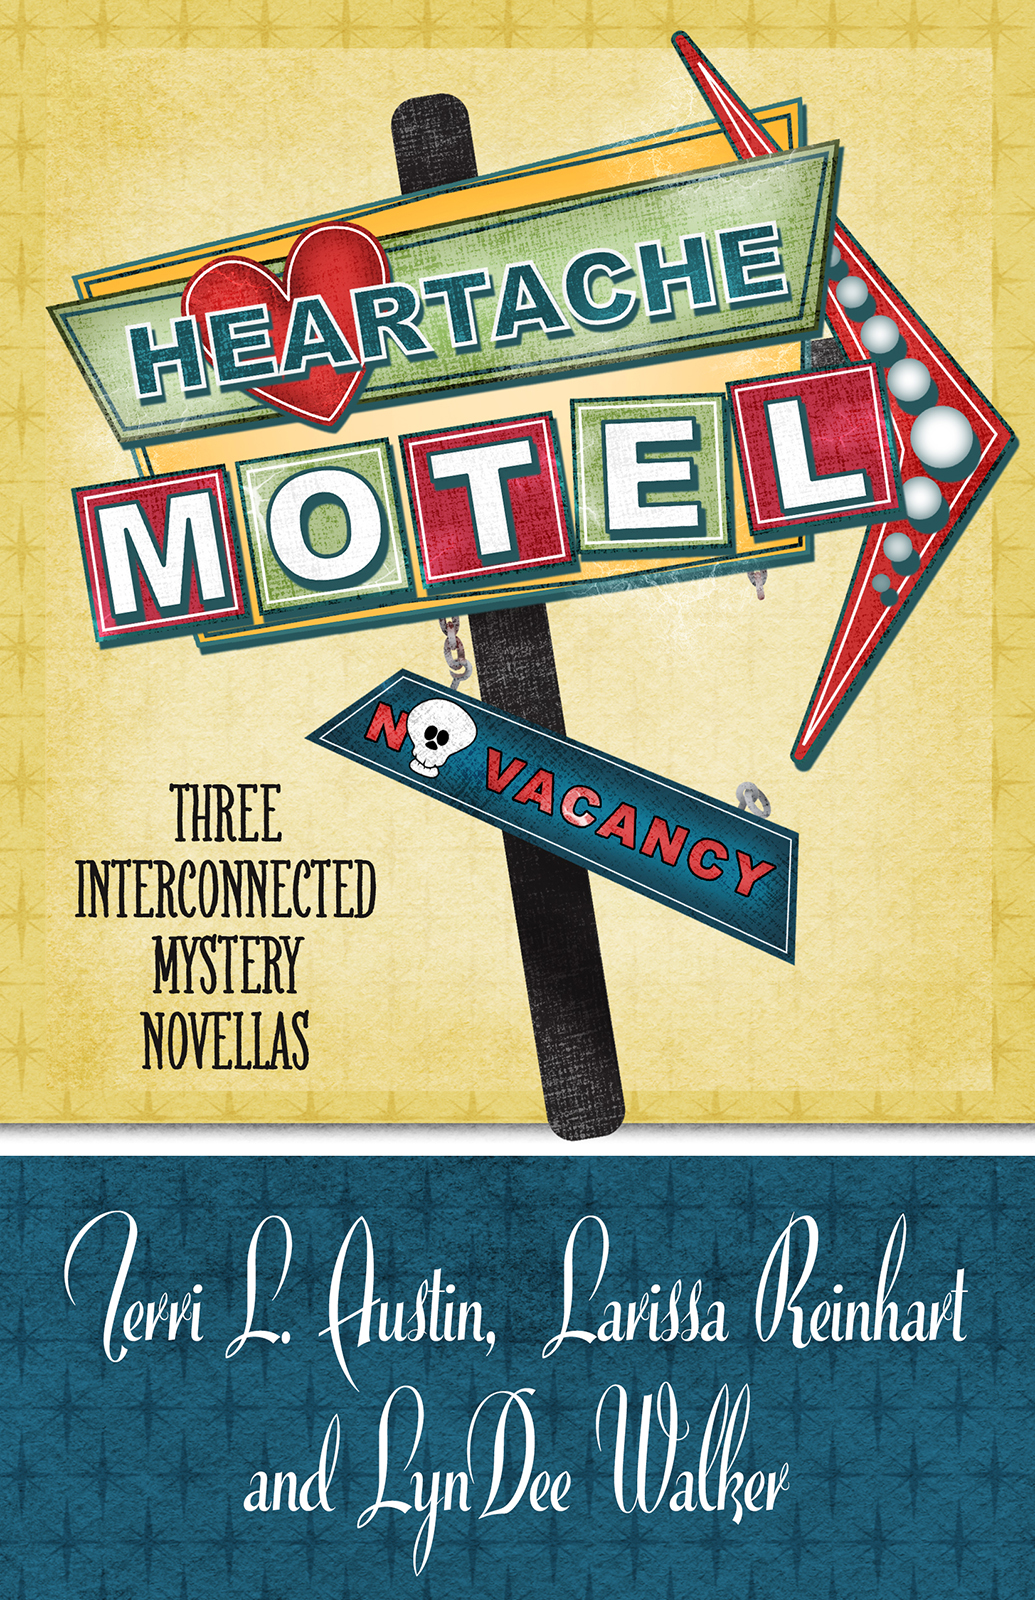 HEARTACHE MOTEL, Three Interconnected Mystery Novellas